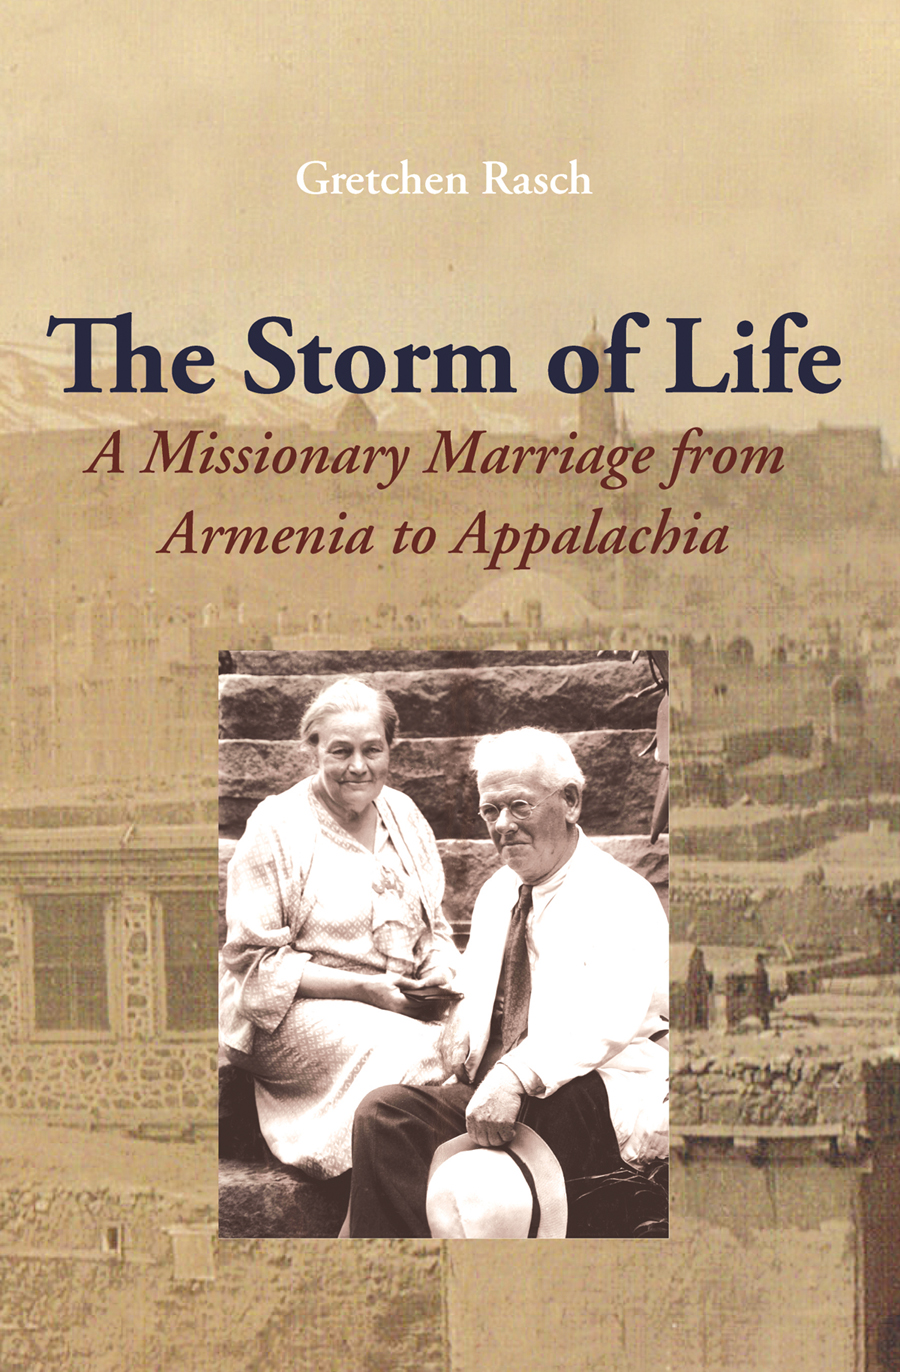 The Storm of Life: A Missionary Marriage from Armenia to Appalachia